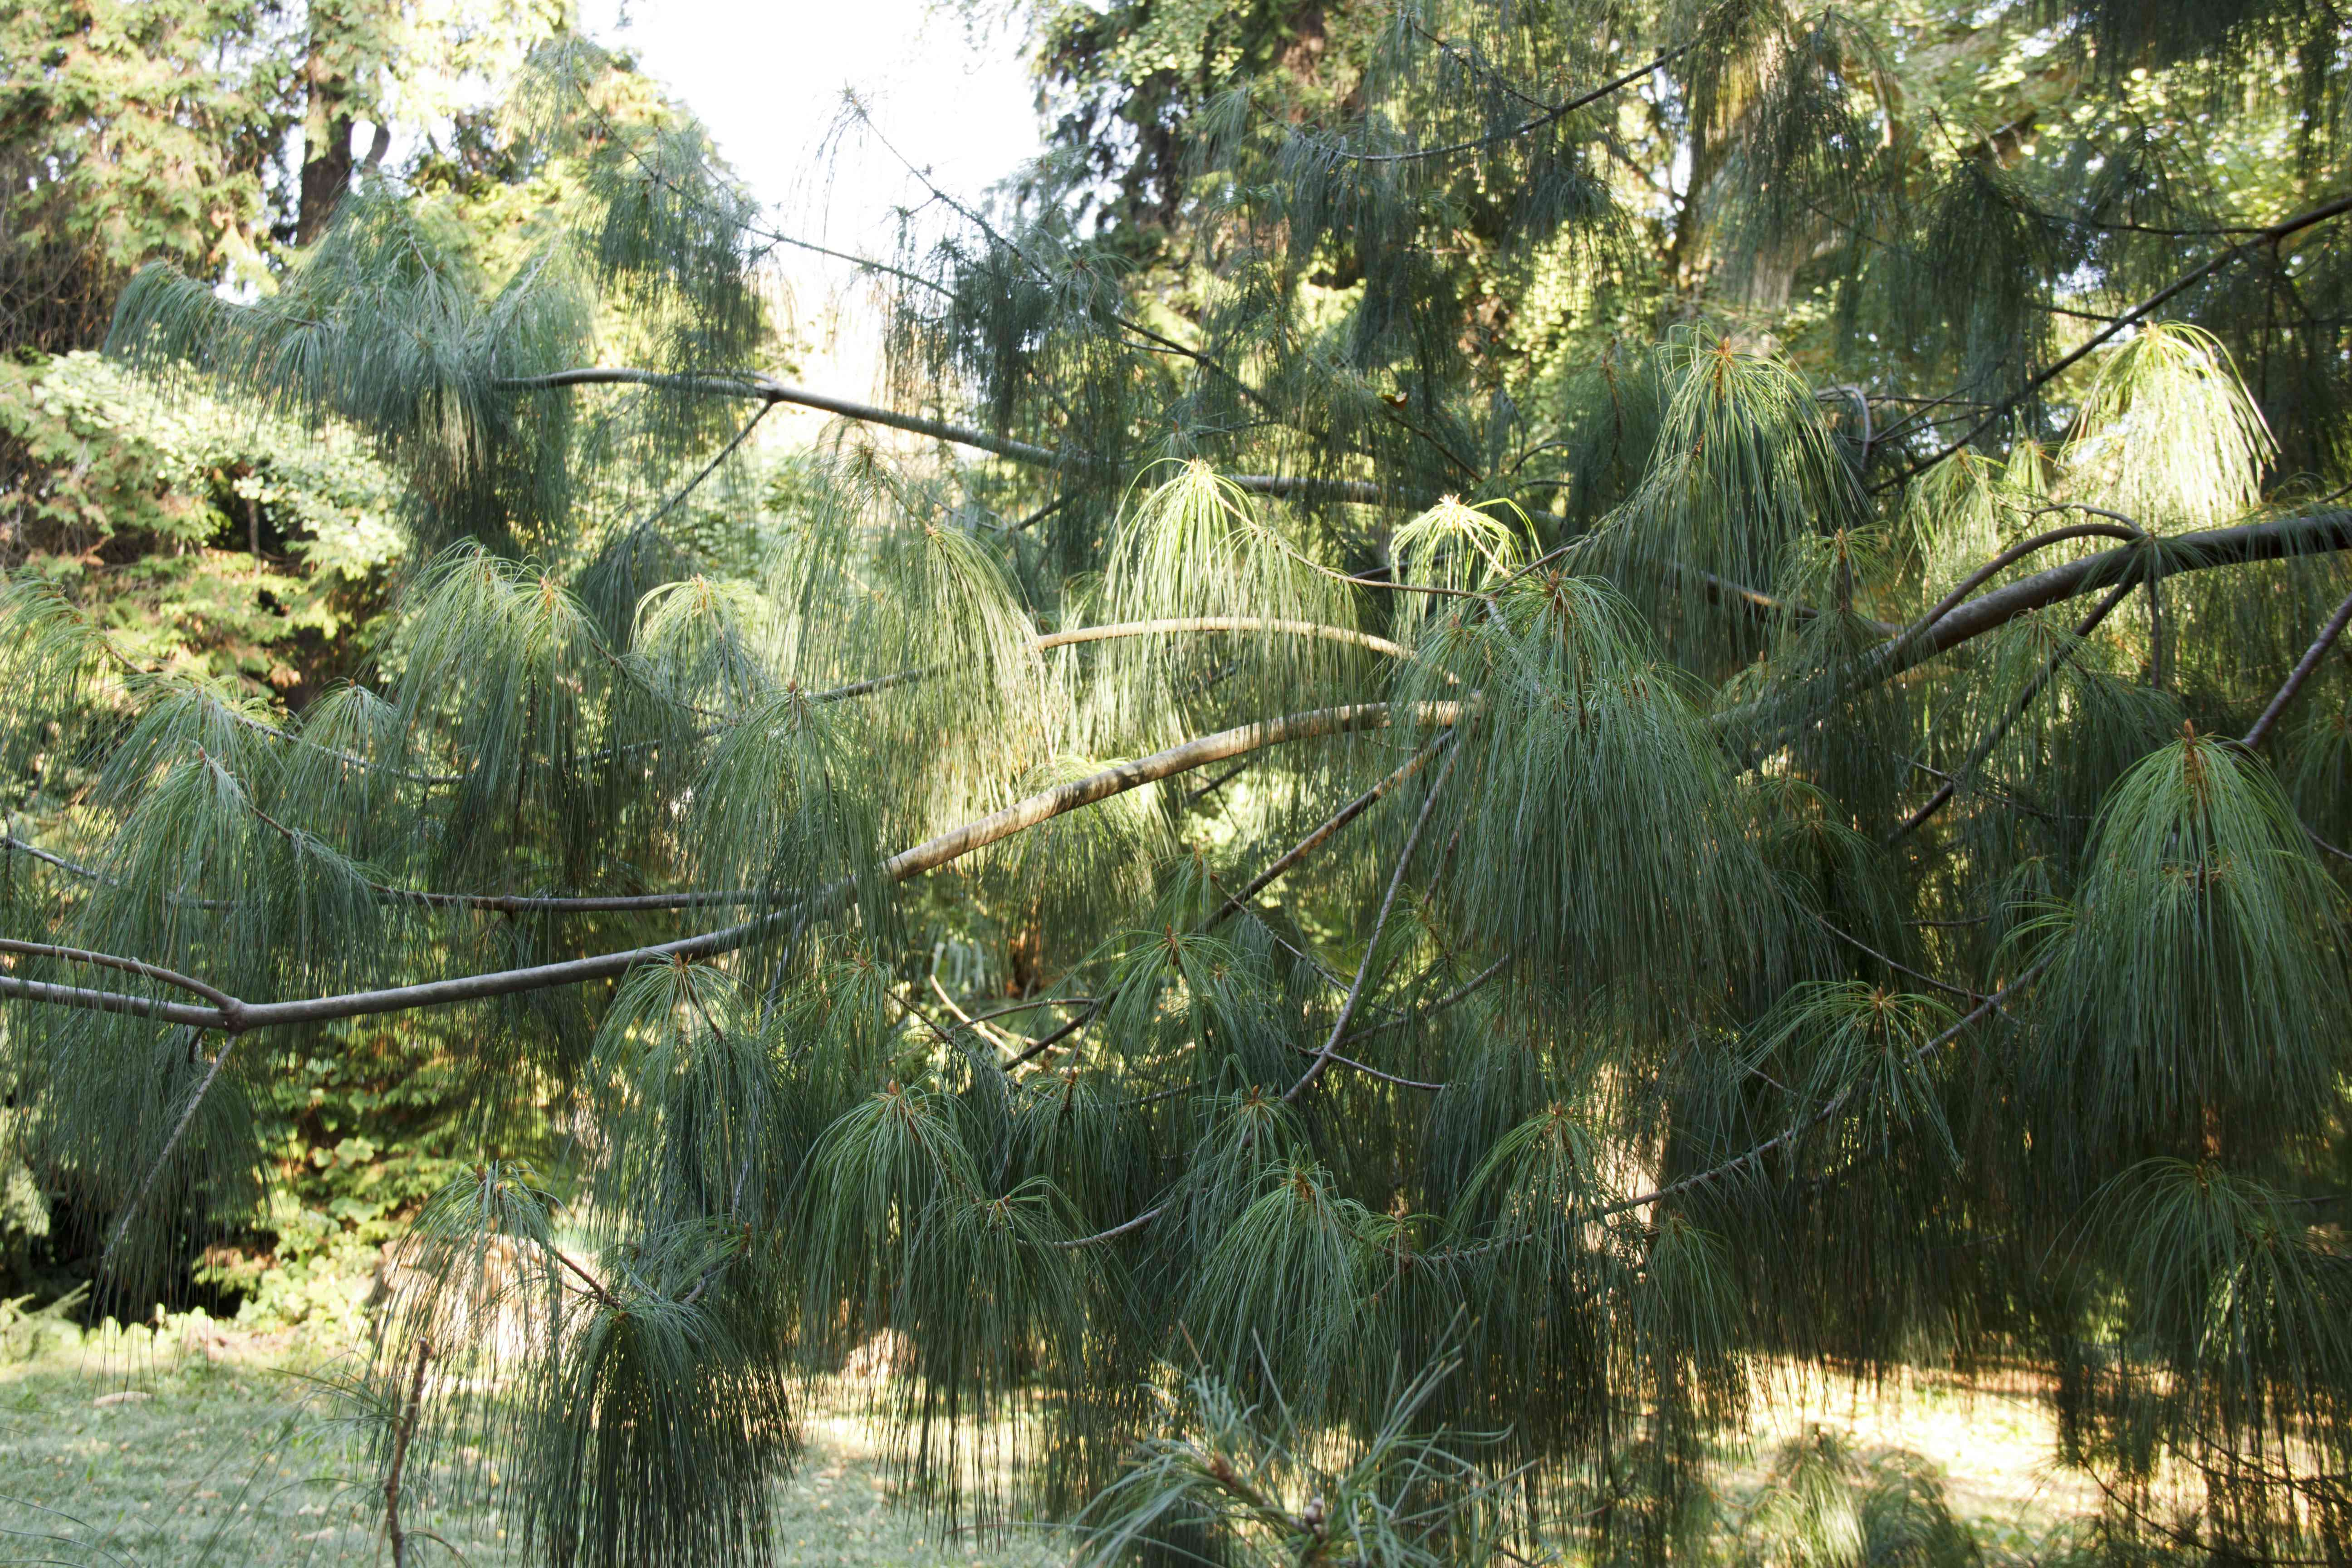 Mexican Weeping Pine Pinus patula